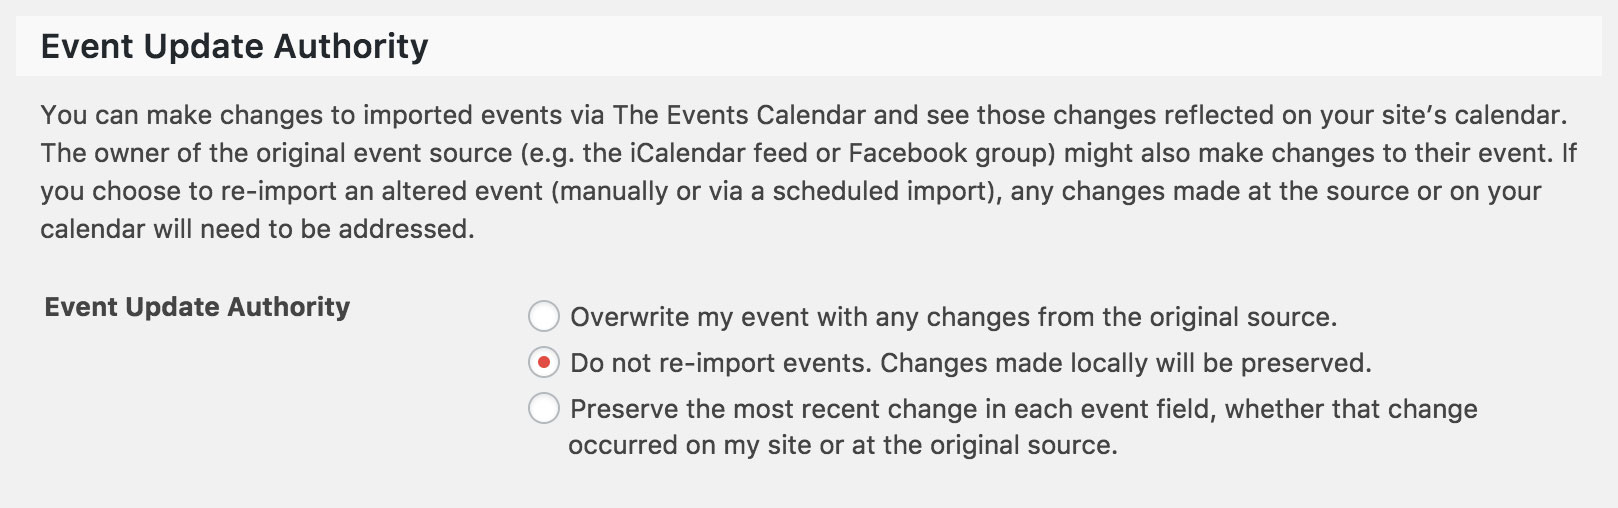 kb-ea-event-update-authority